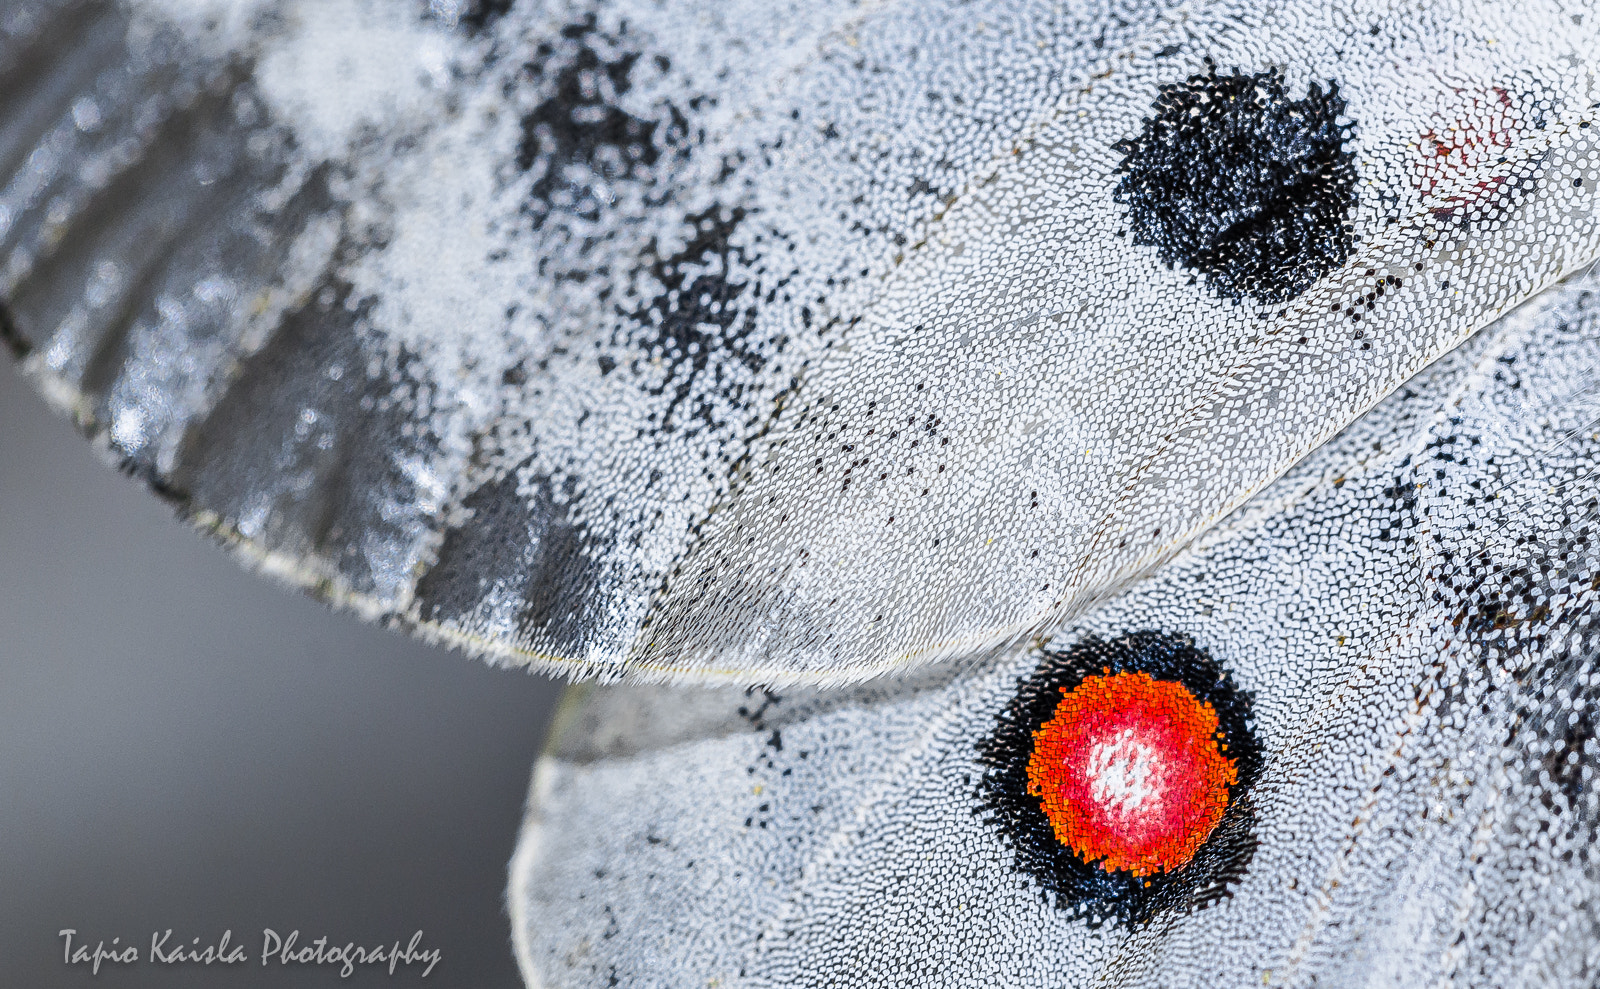 Photograph Red eye of an Apollo butterfly by Tapio Kaisla on 500px